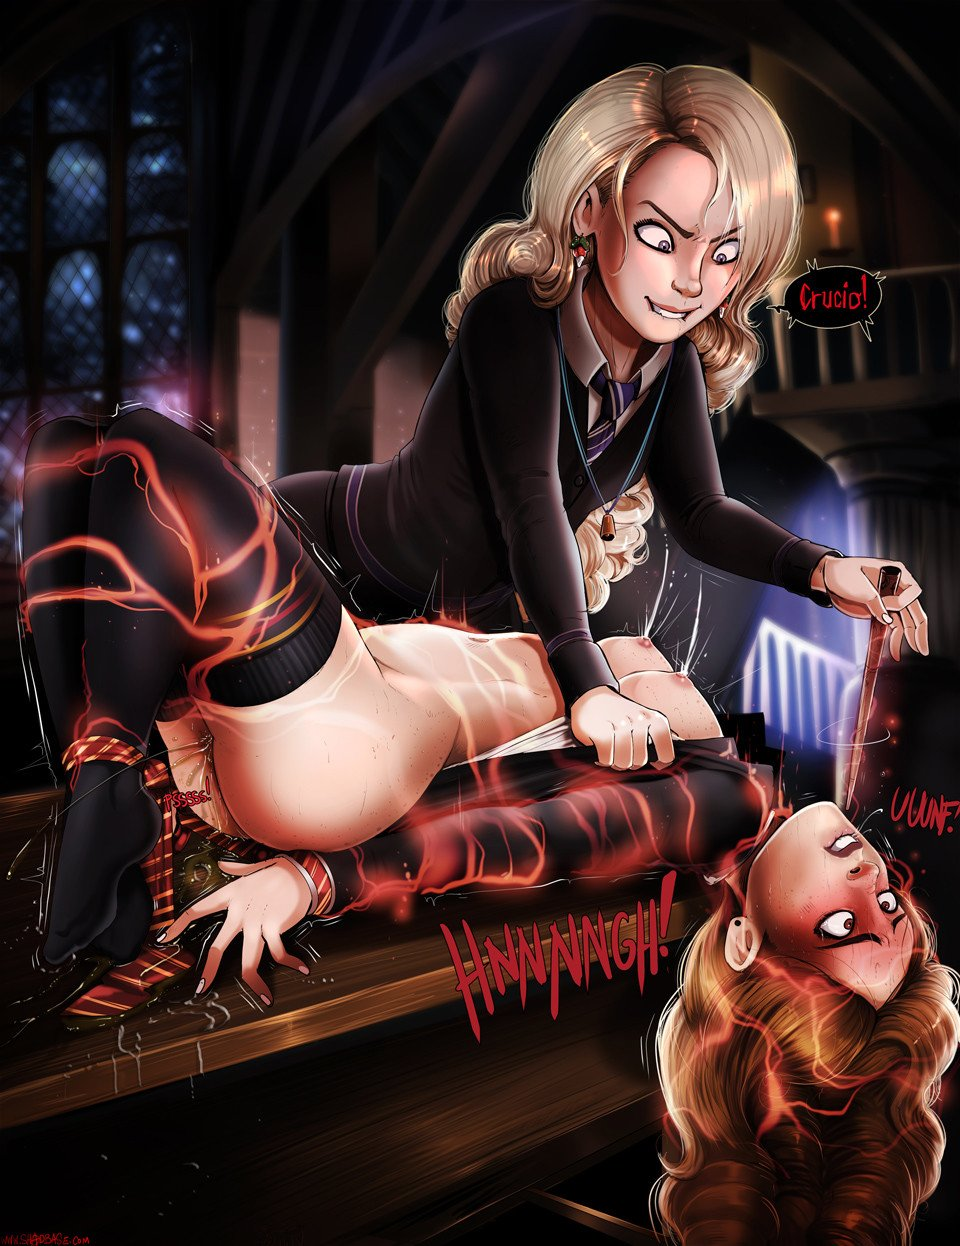 Harry potter porn galleries sex video